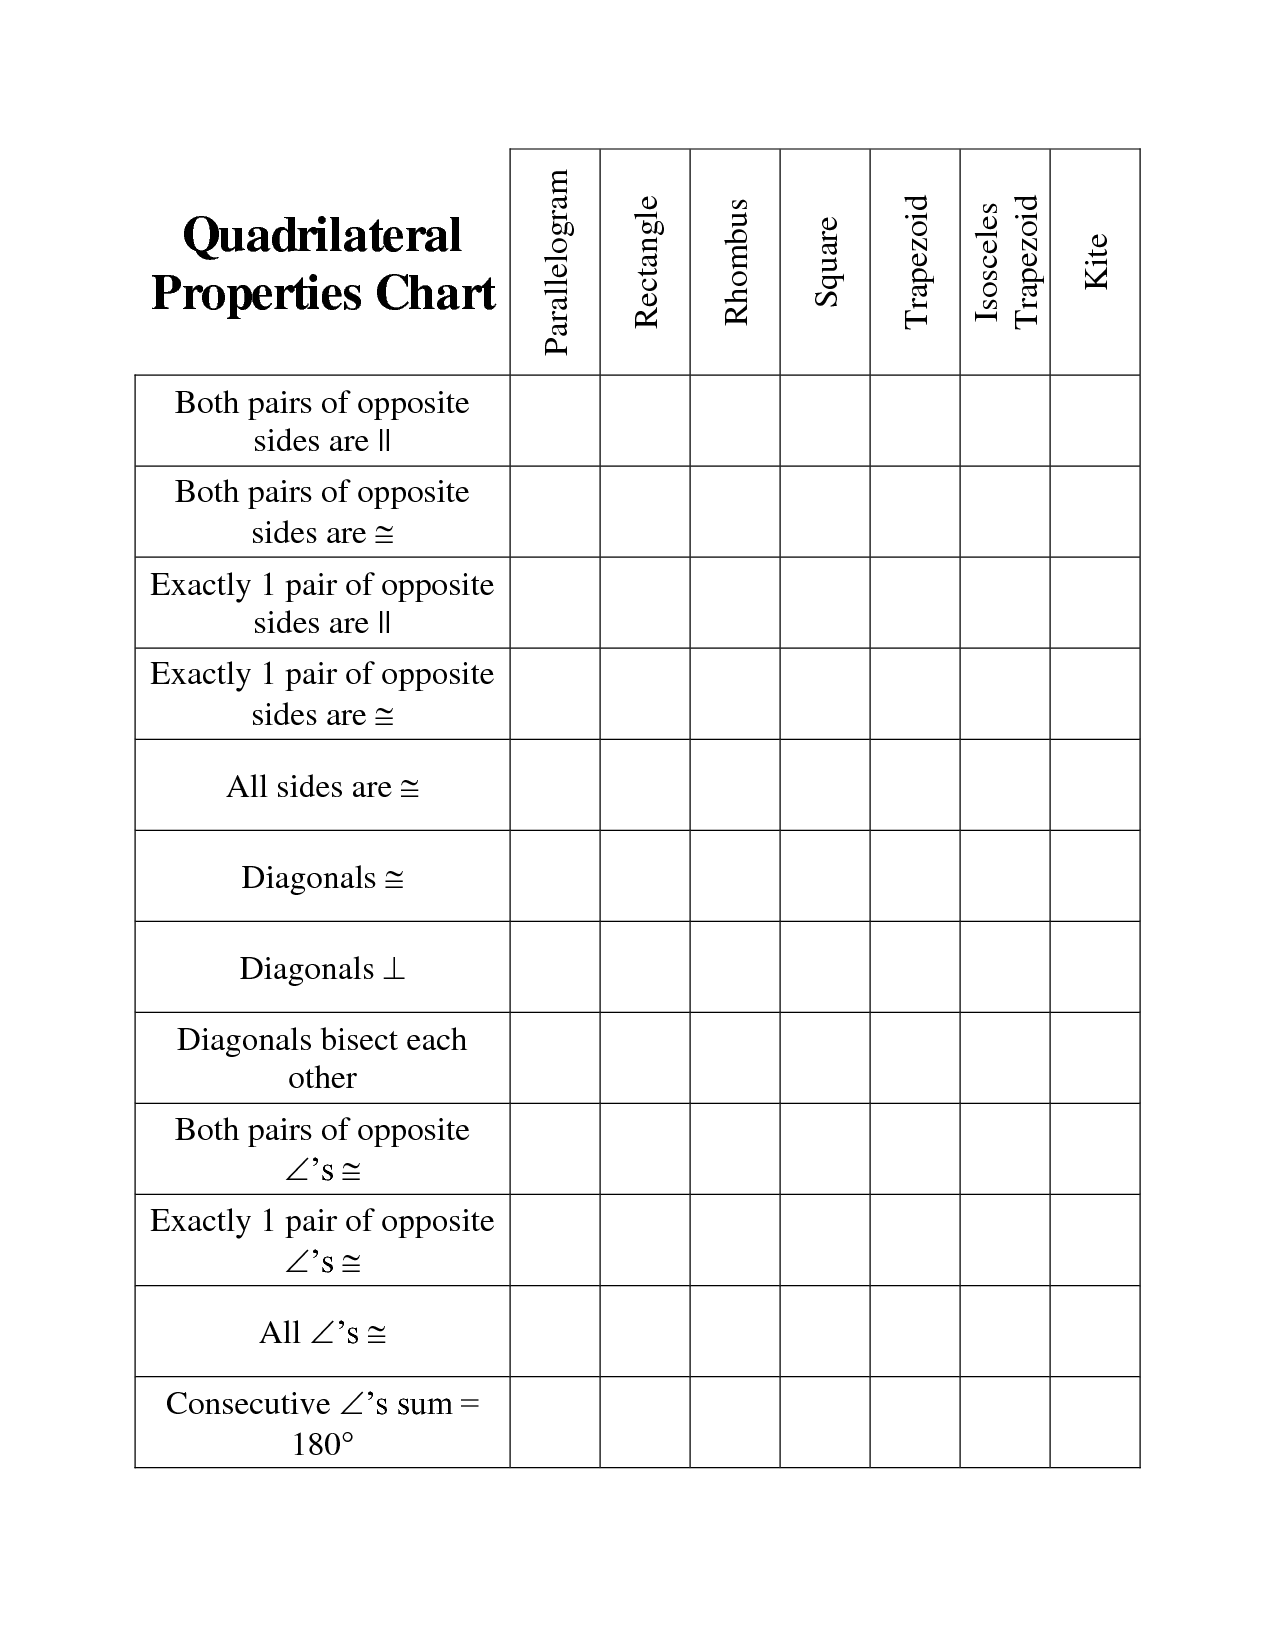 Quadrilaterals Worksheet For Grade 9